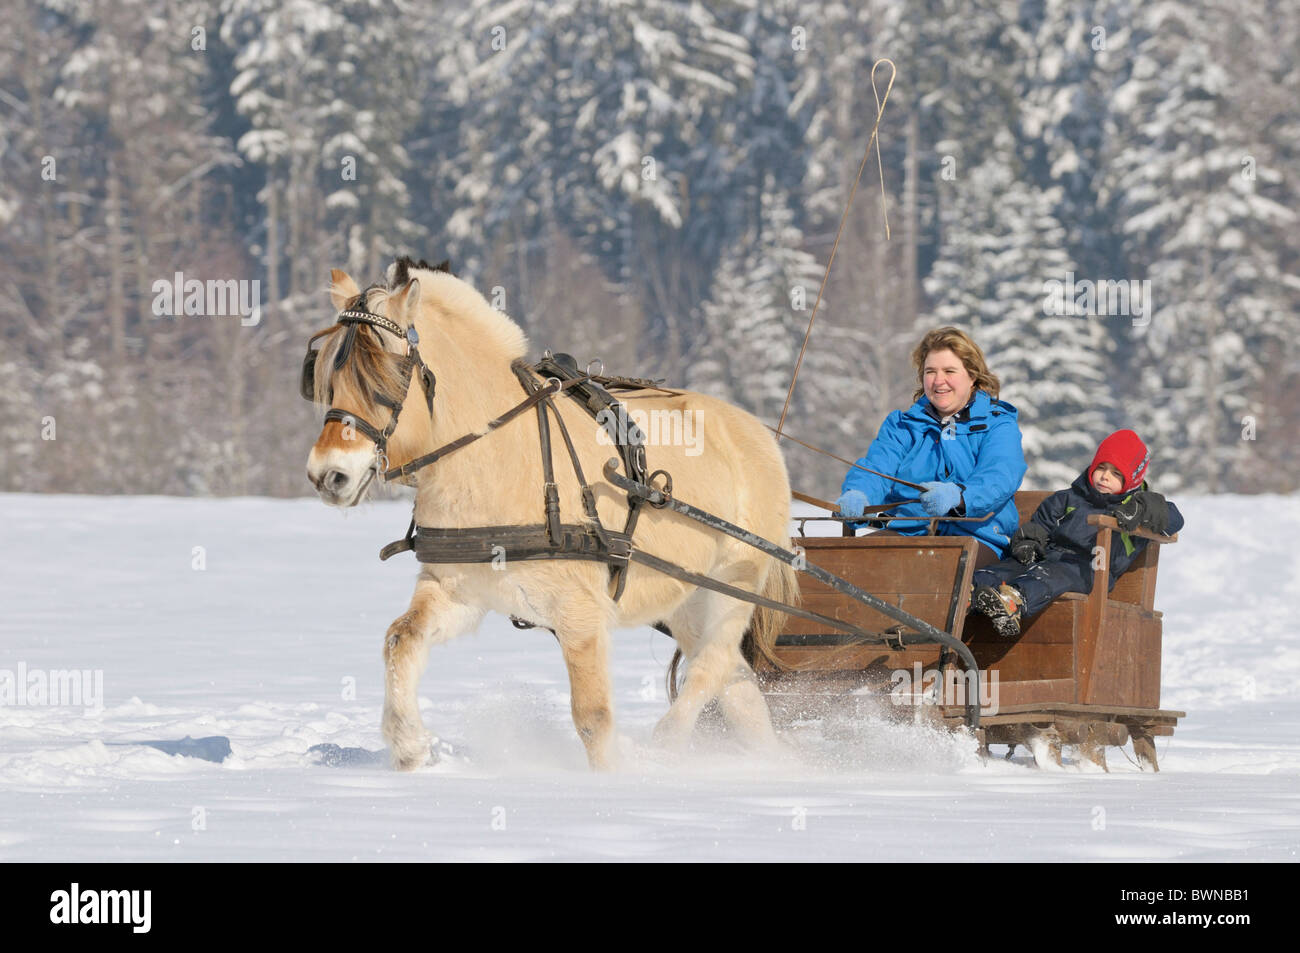 Mother and son in a horse sleigh drawn by a Norwegian horse - Stock Image